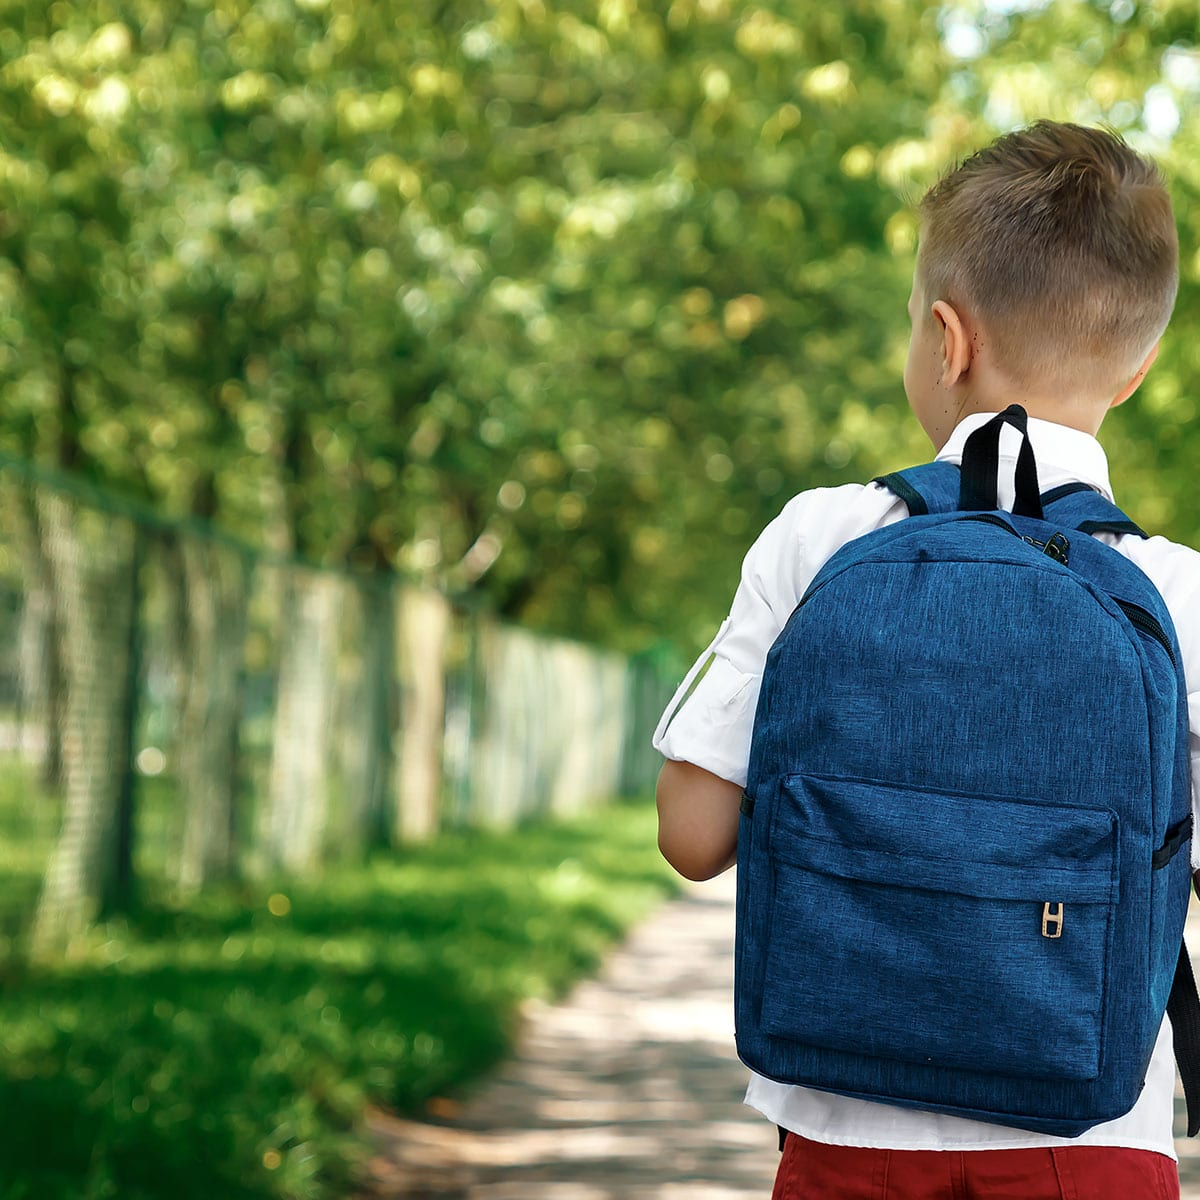 BACK TO SCHOOL MONTH - August 2020